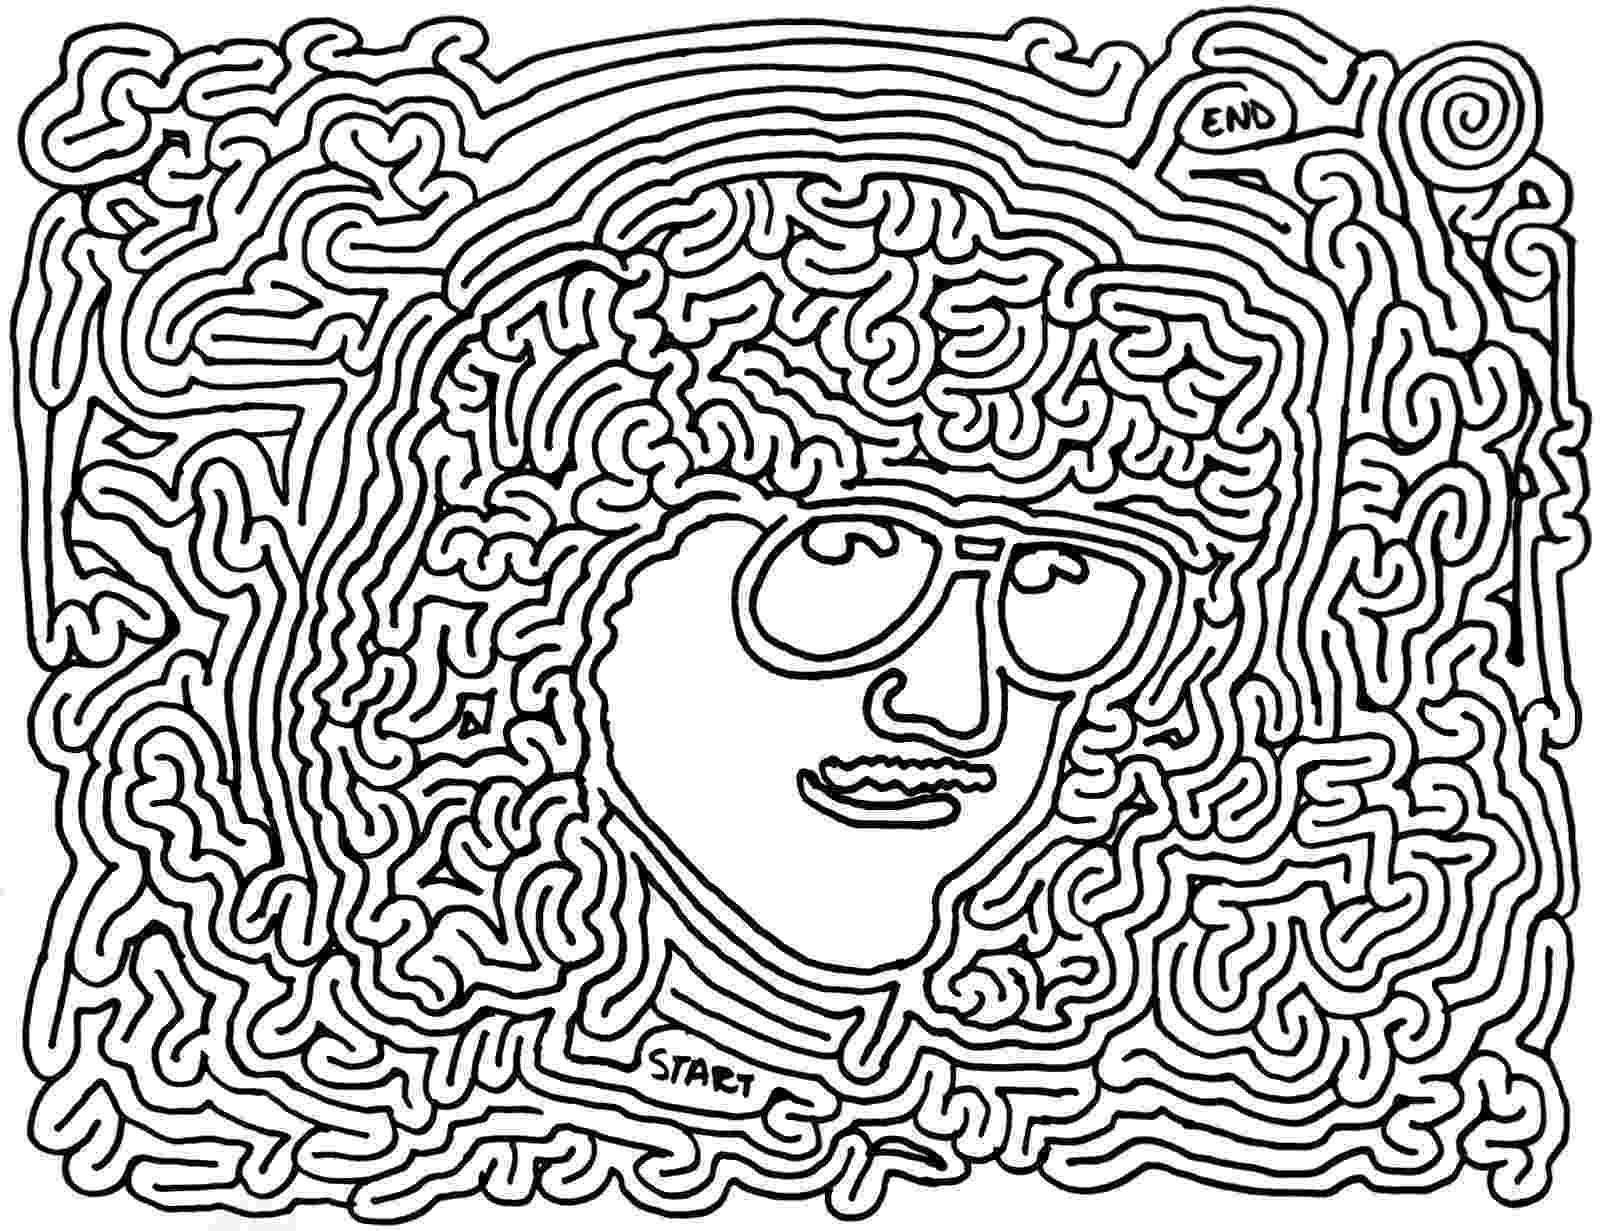 trippy printable coloring pages httpwwwbingcomimagessearchqtrippy mushroom trippy coloring printable pages